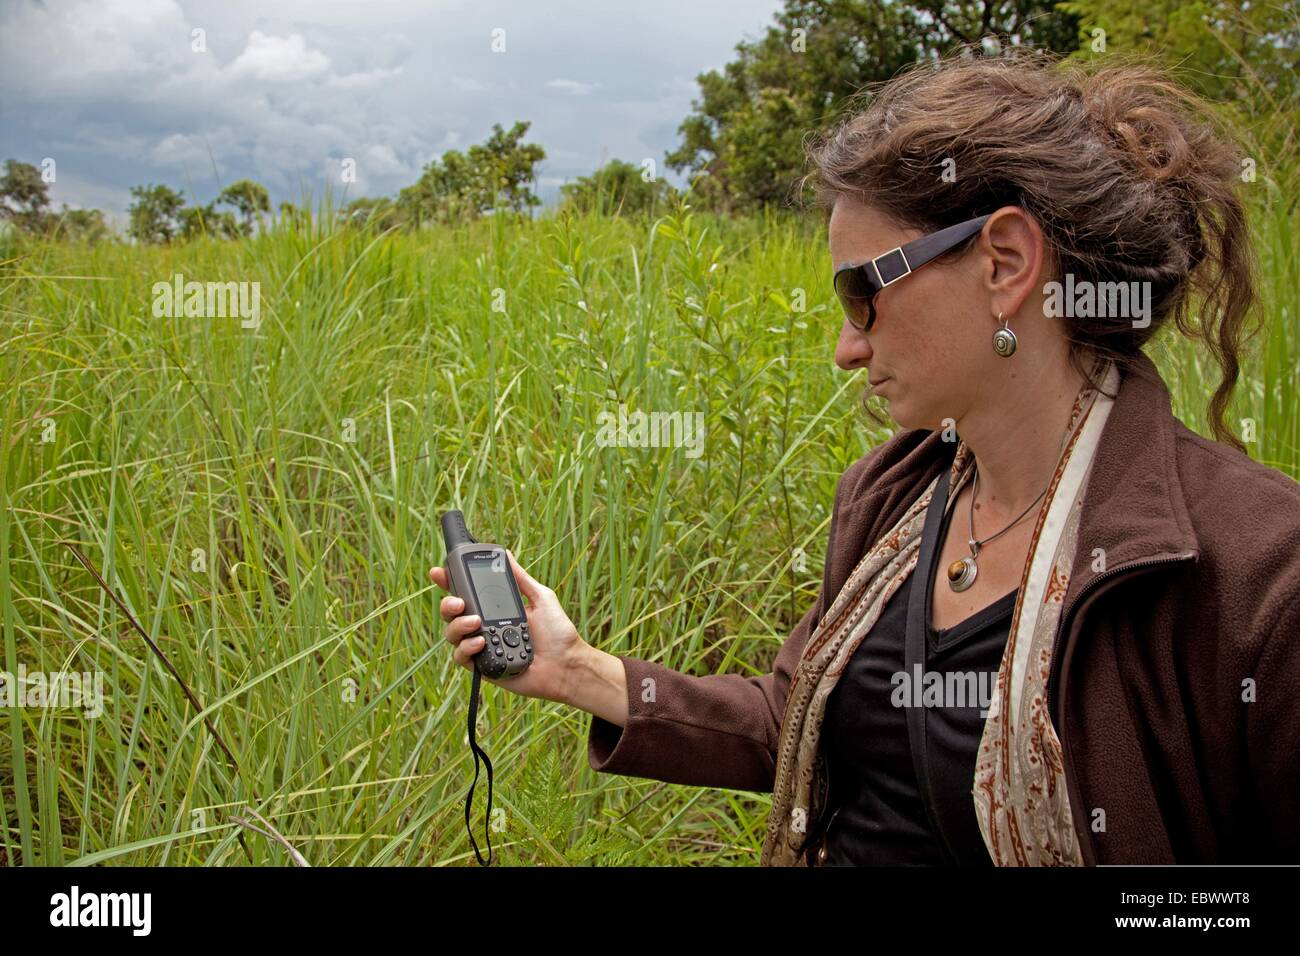 tourist orients herself with the help of a GPS computer at the 'National Parc de la Ruvubu' at the East - Stock Image